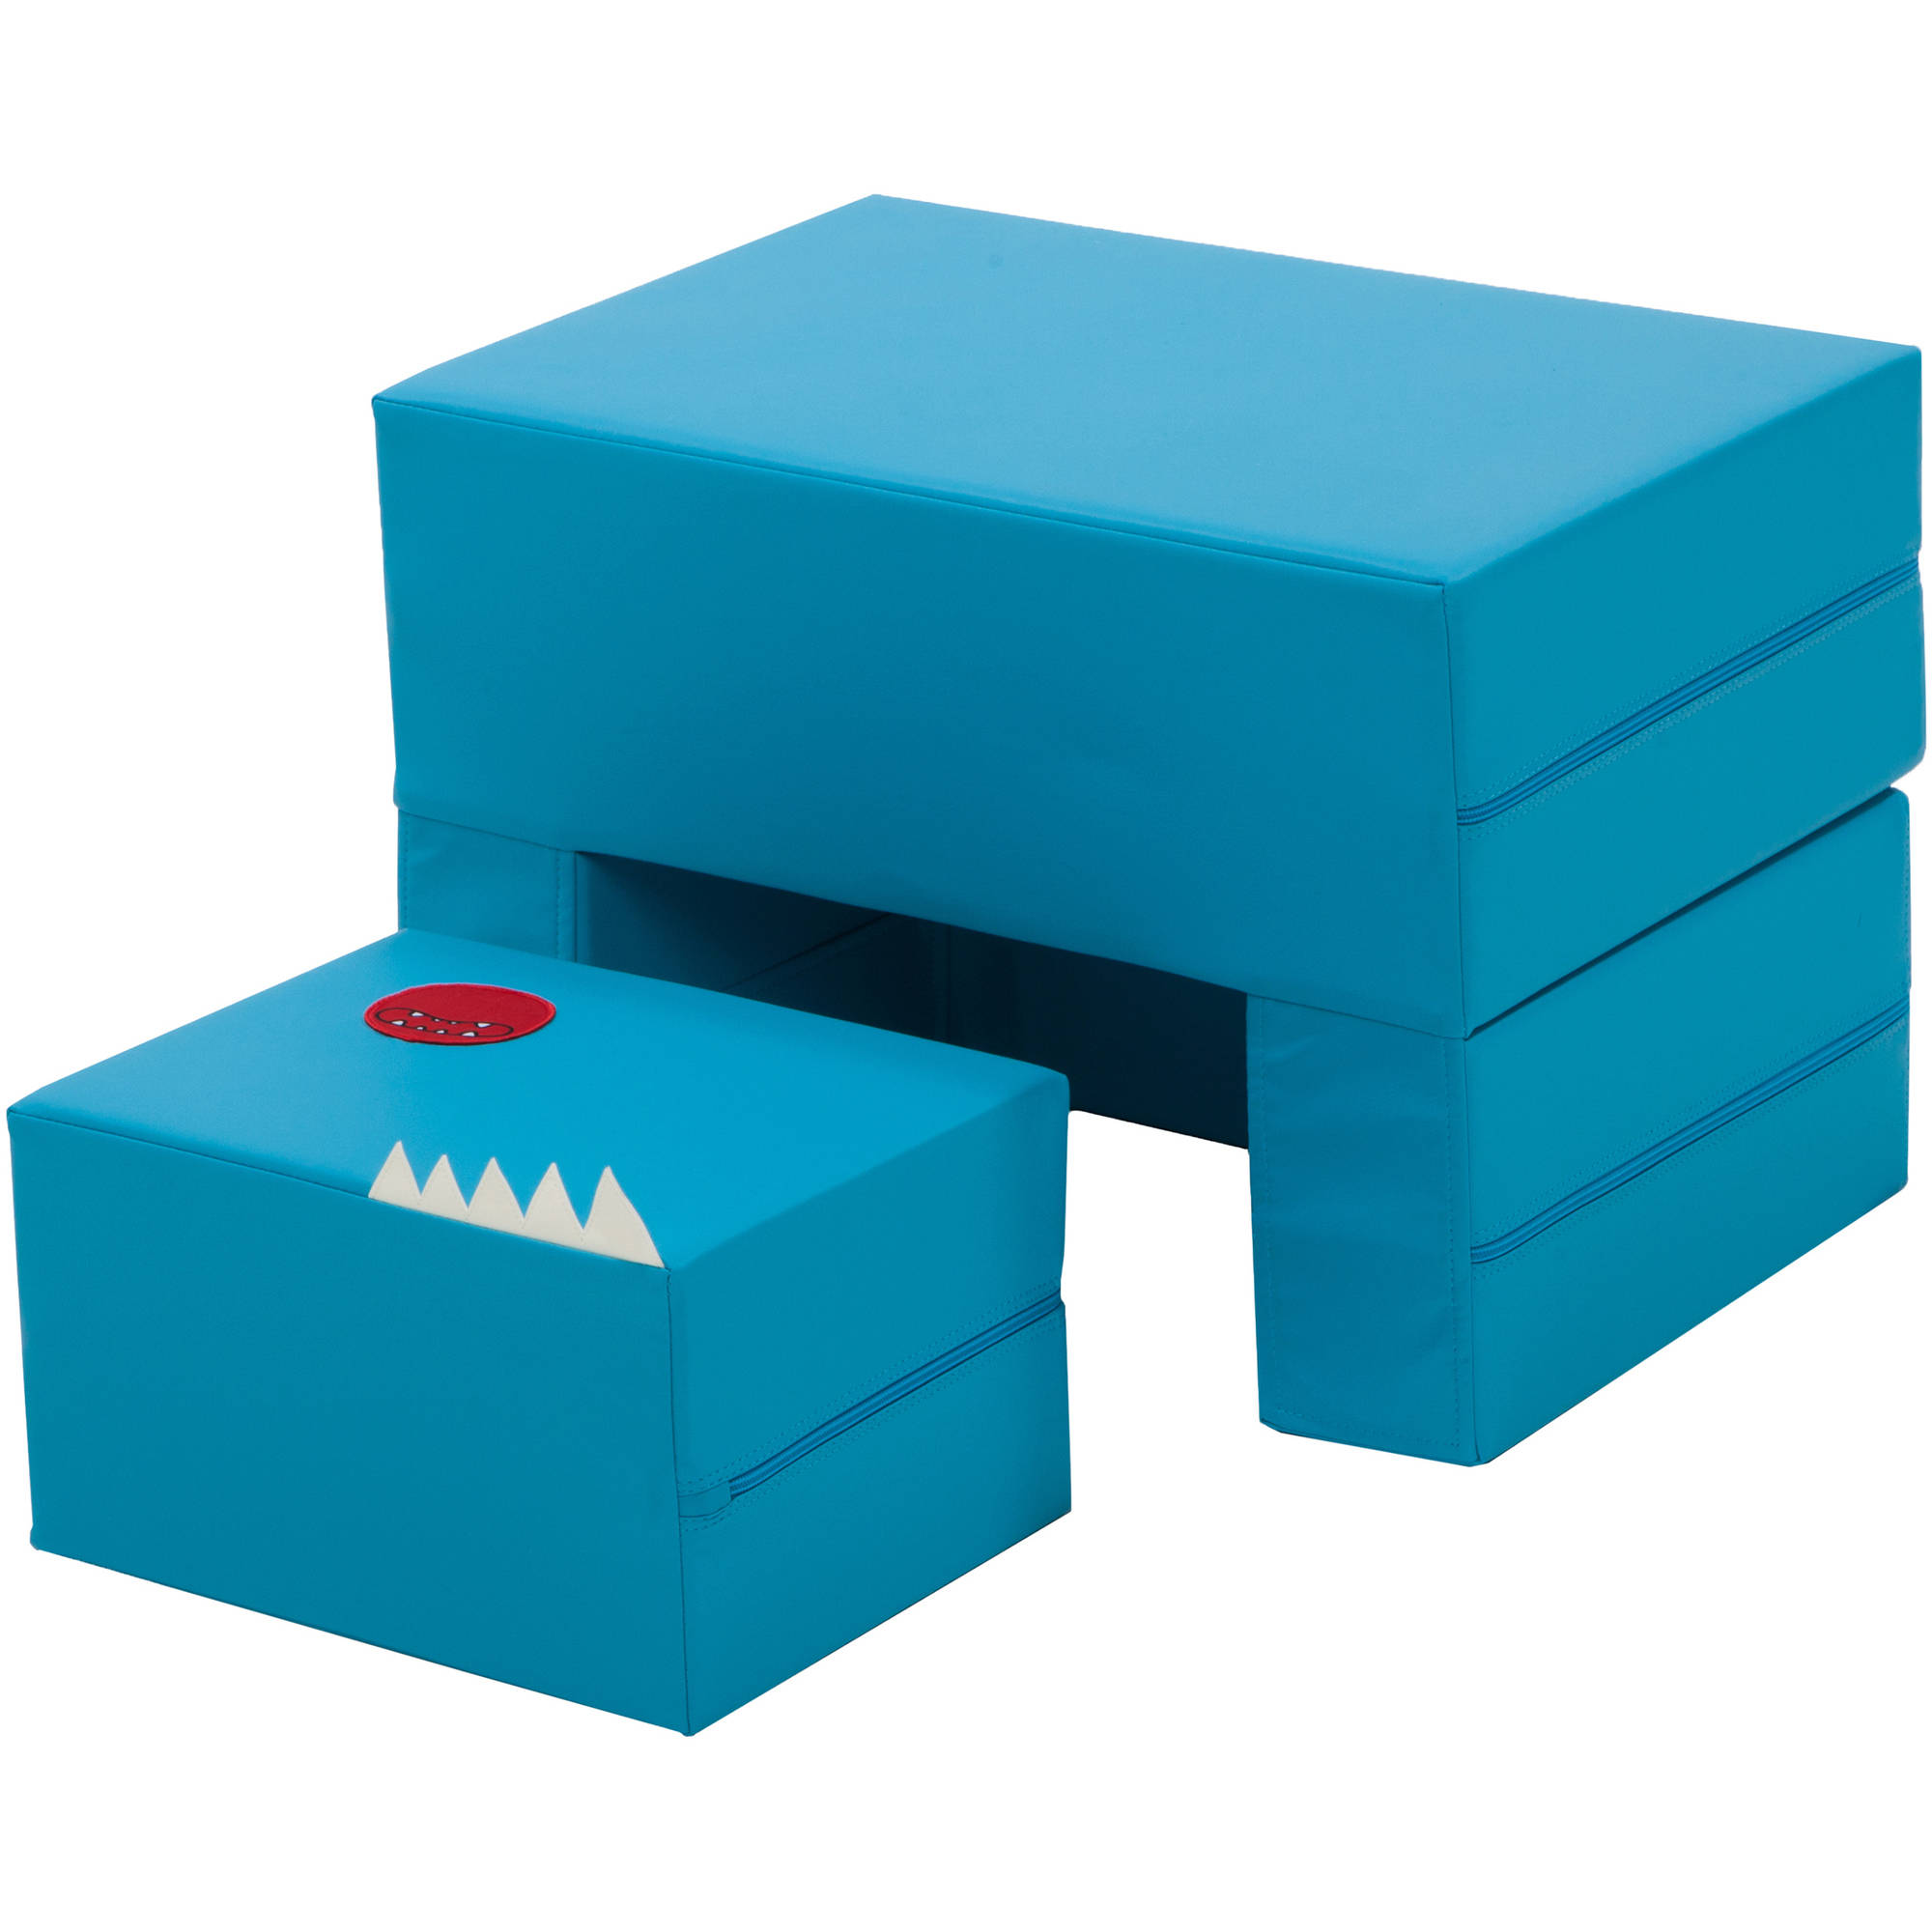 Cake Sofa Transformable Play Furniture for Kids, Blue